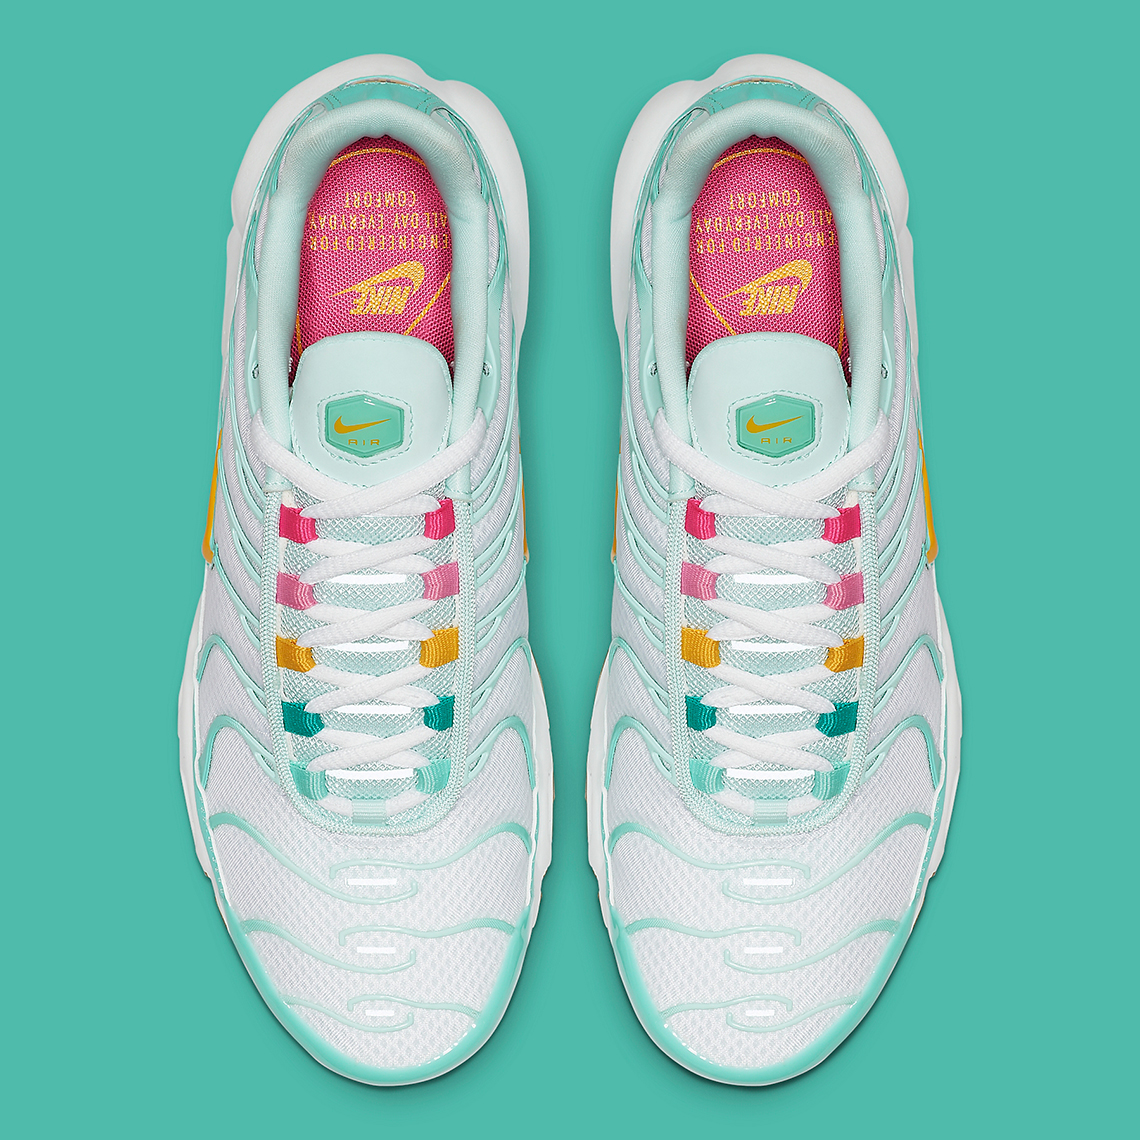 uk availability 84b33 76bd6 Nike Air Max Plus Women's Easter CJ9925-300 Release Date ...